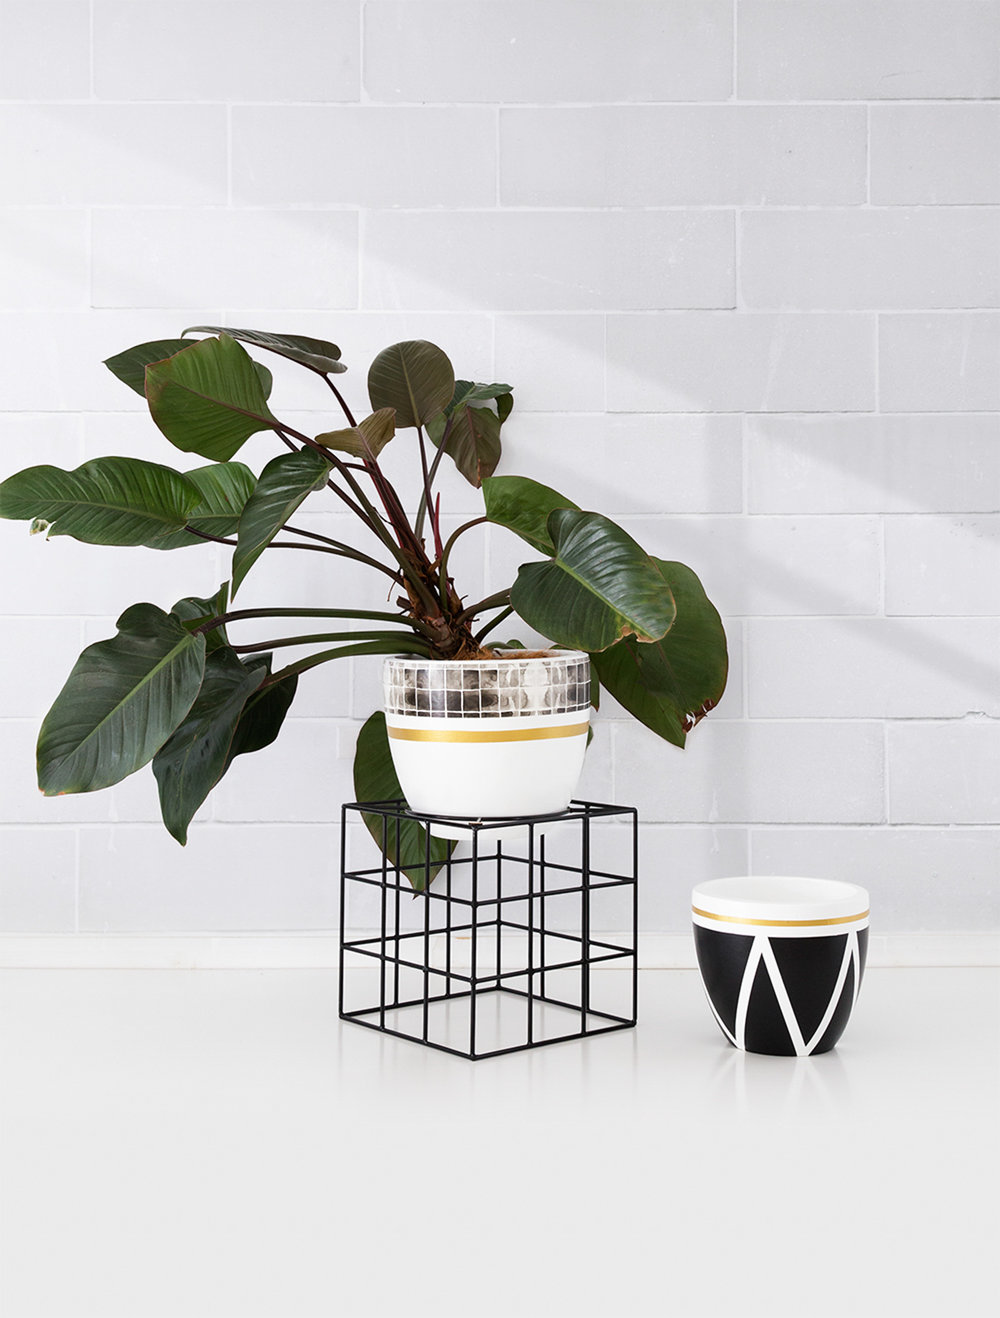 Grid Wallpaper pot with The Hulk Plant stand and Pancho pot on floor 23 LR.jpg